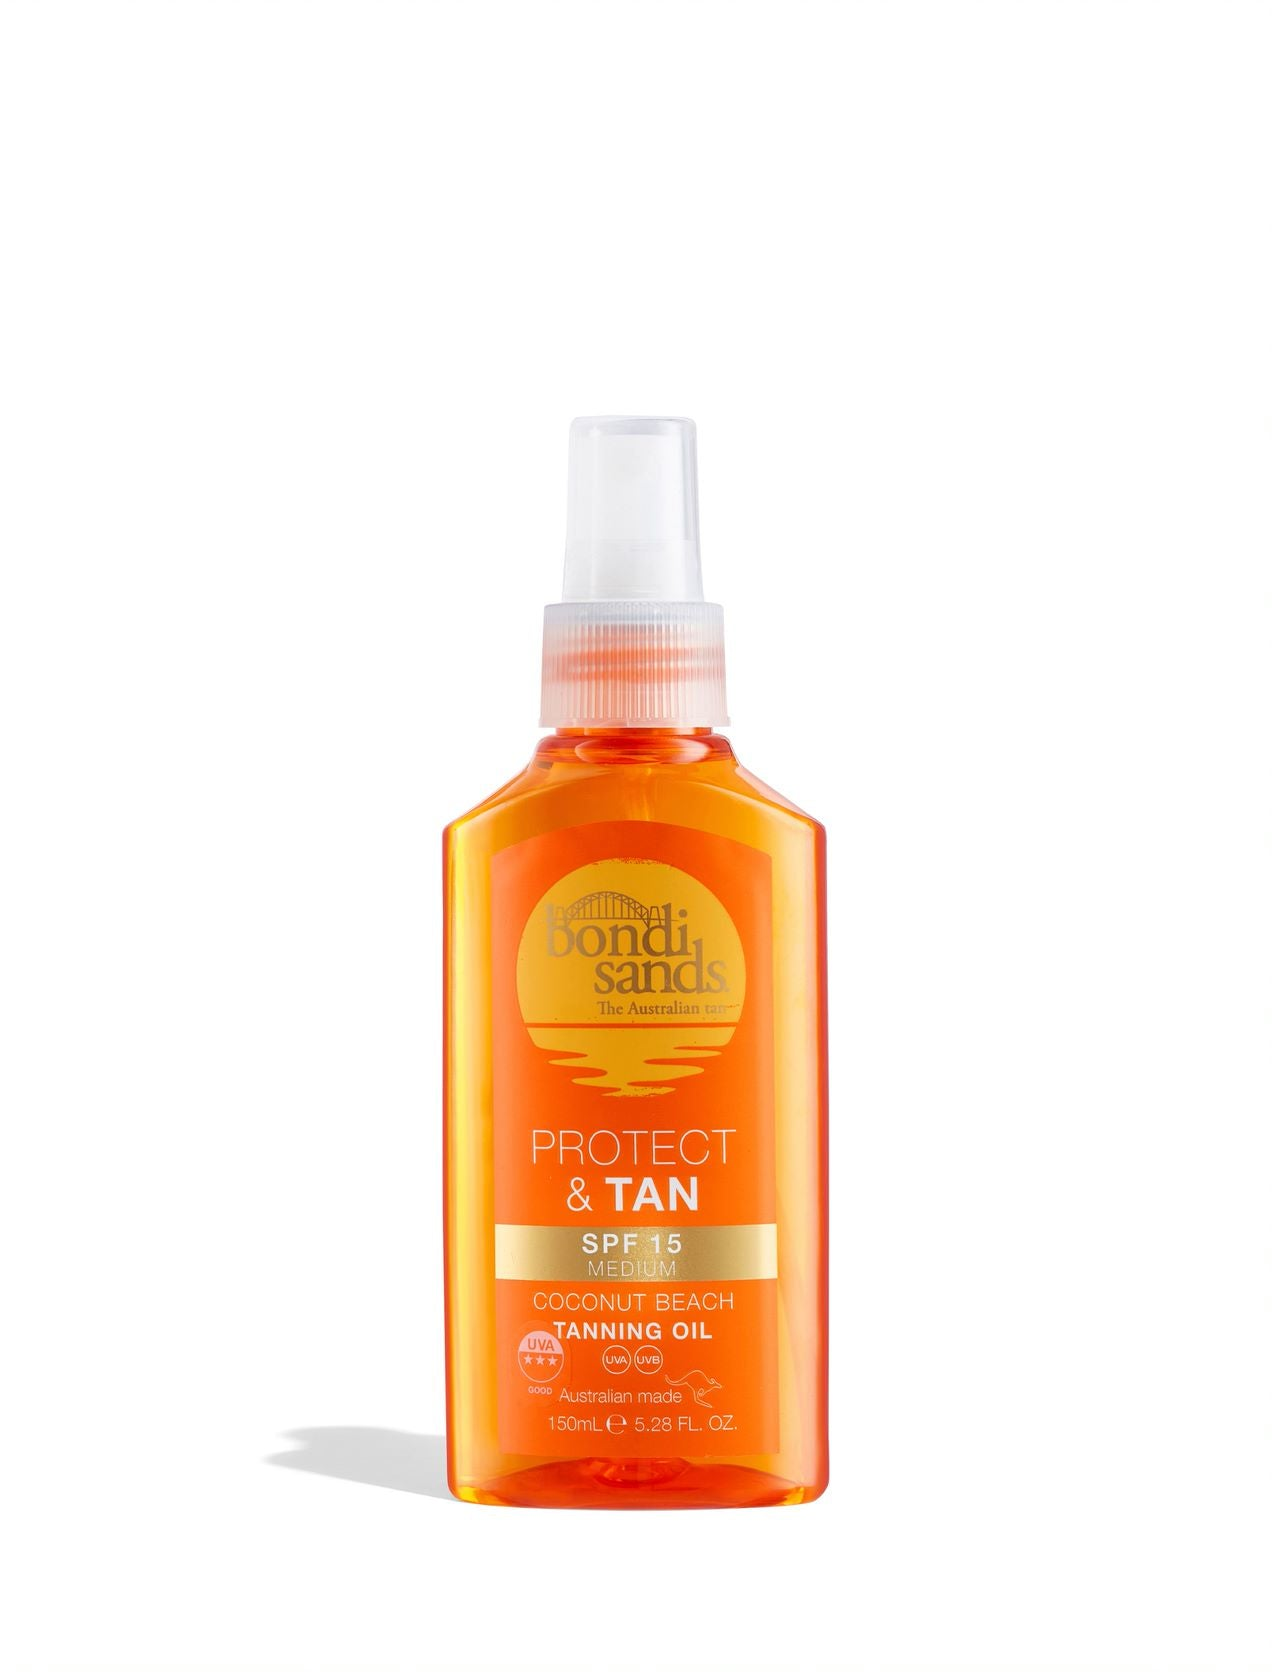 SPF 15 Sunscreen Tanning Oil